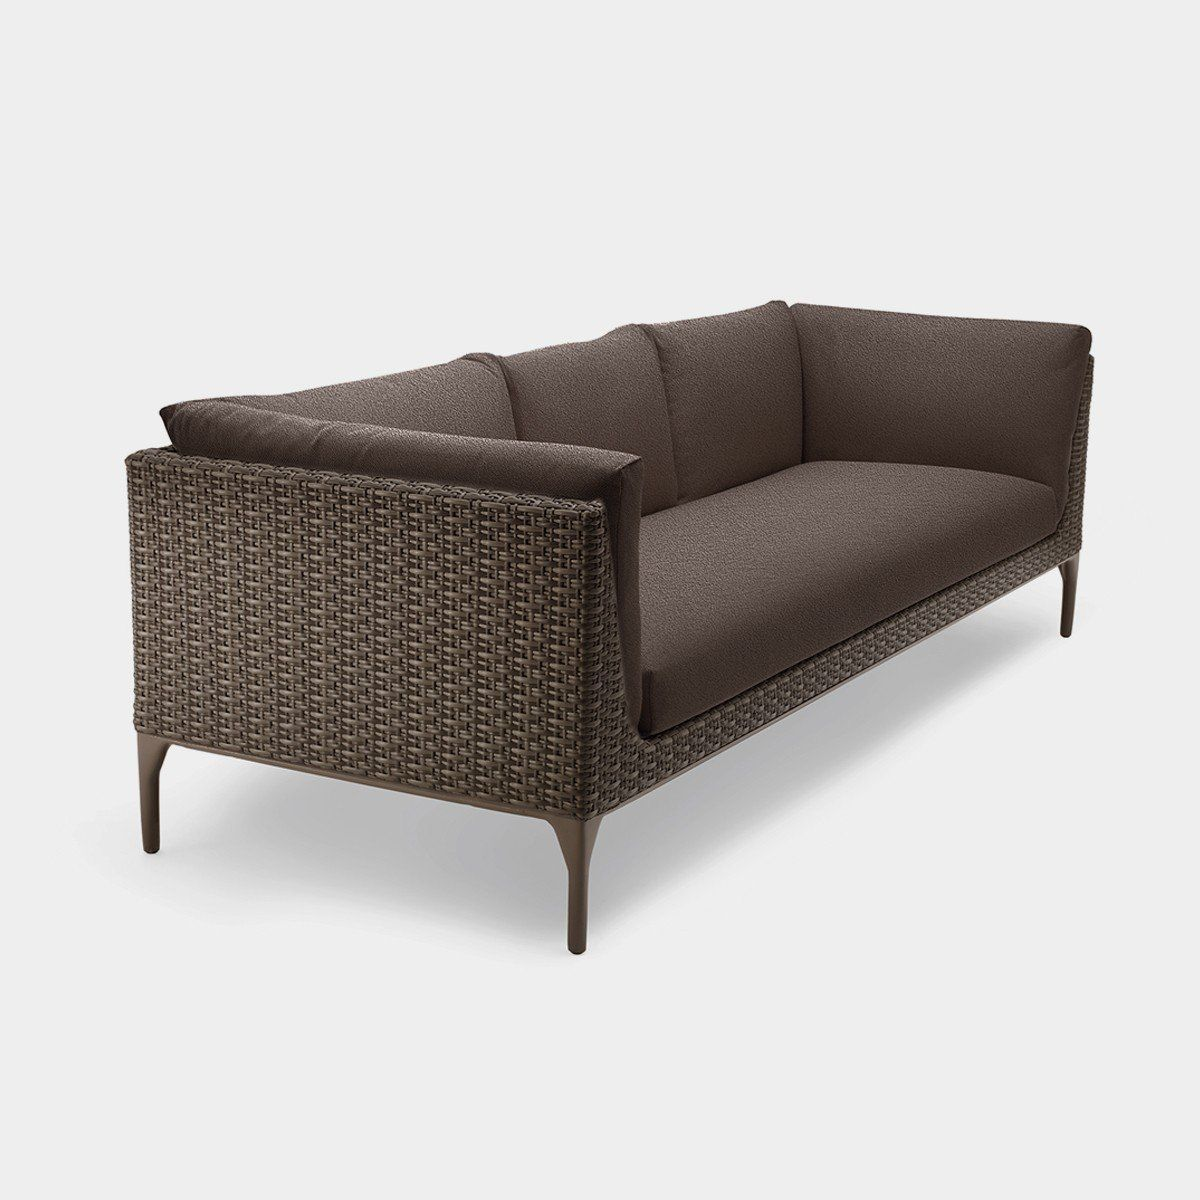 4er Couch Mu 4er-sofa In 2019 | Outdoor Wicker Furniture, Outdoor